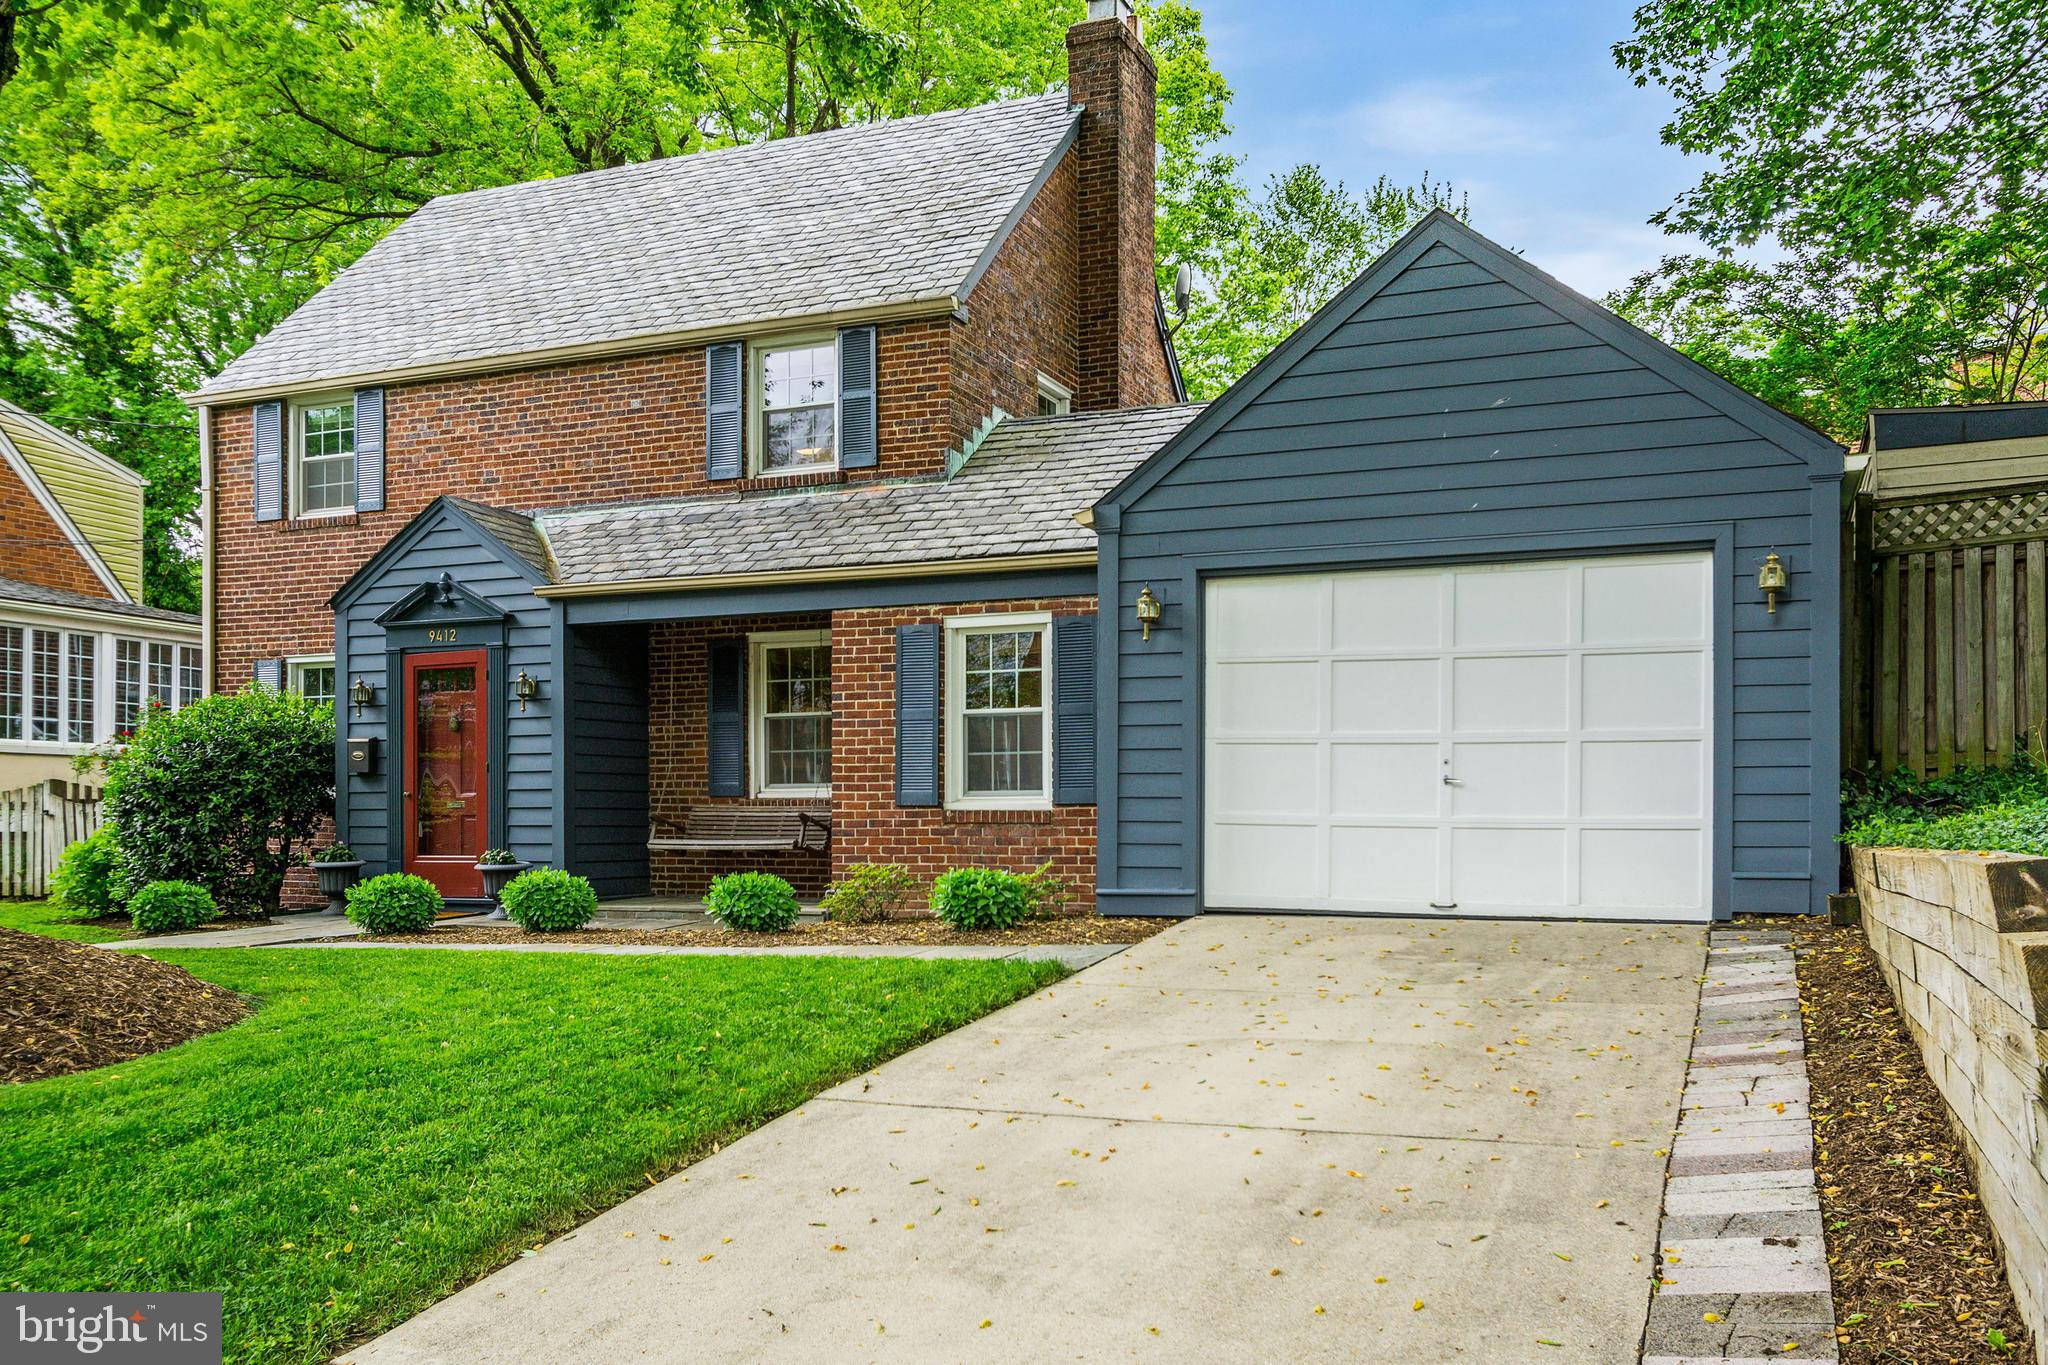 9412 RUSSELL ROAD, SILVER SPRING, MD 20910